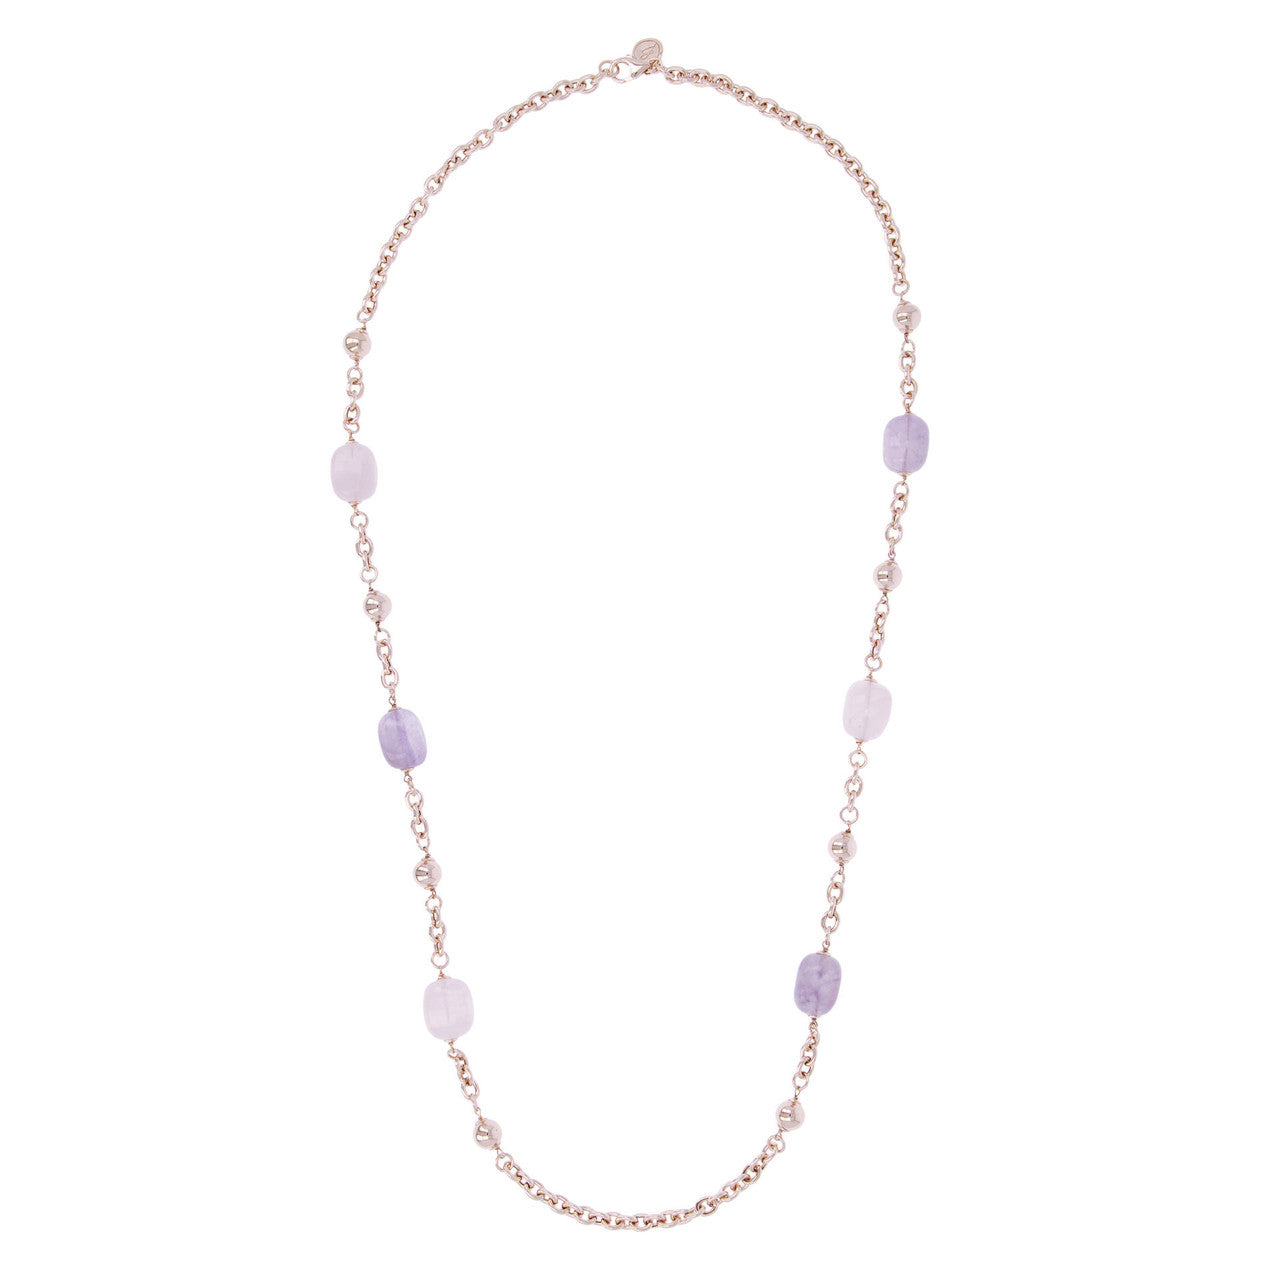 Amethyst and Rose Quartz Bead Necklace